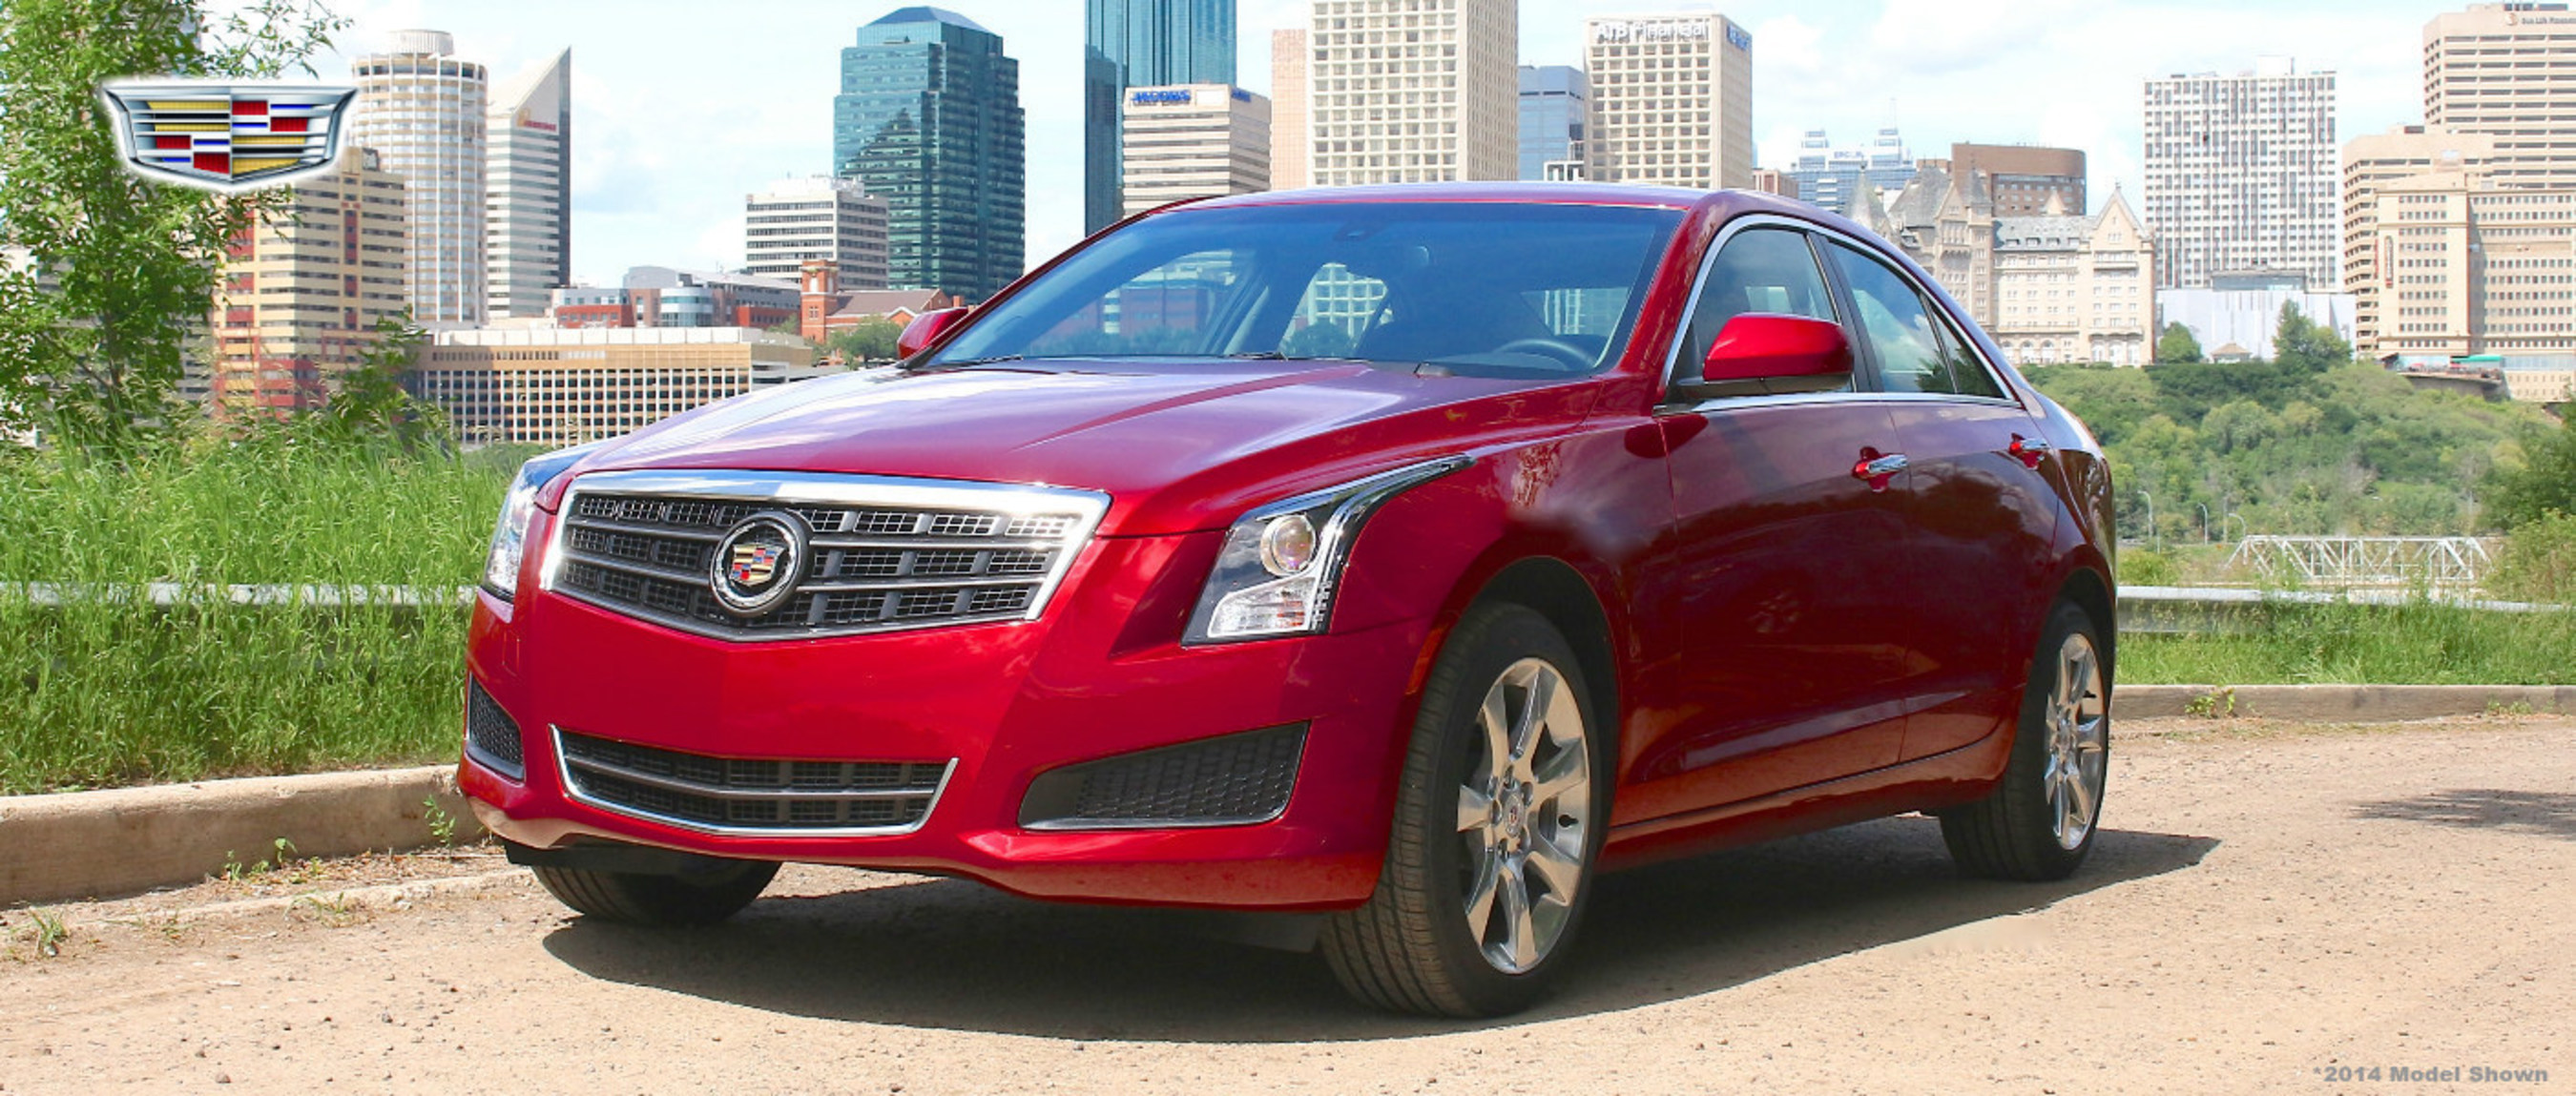 Don Wheaton's Cadillac inventory among area's best